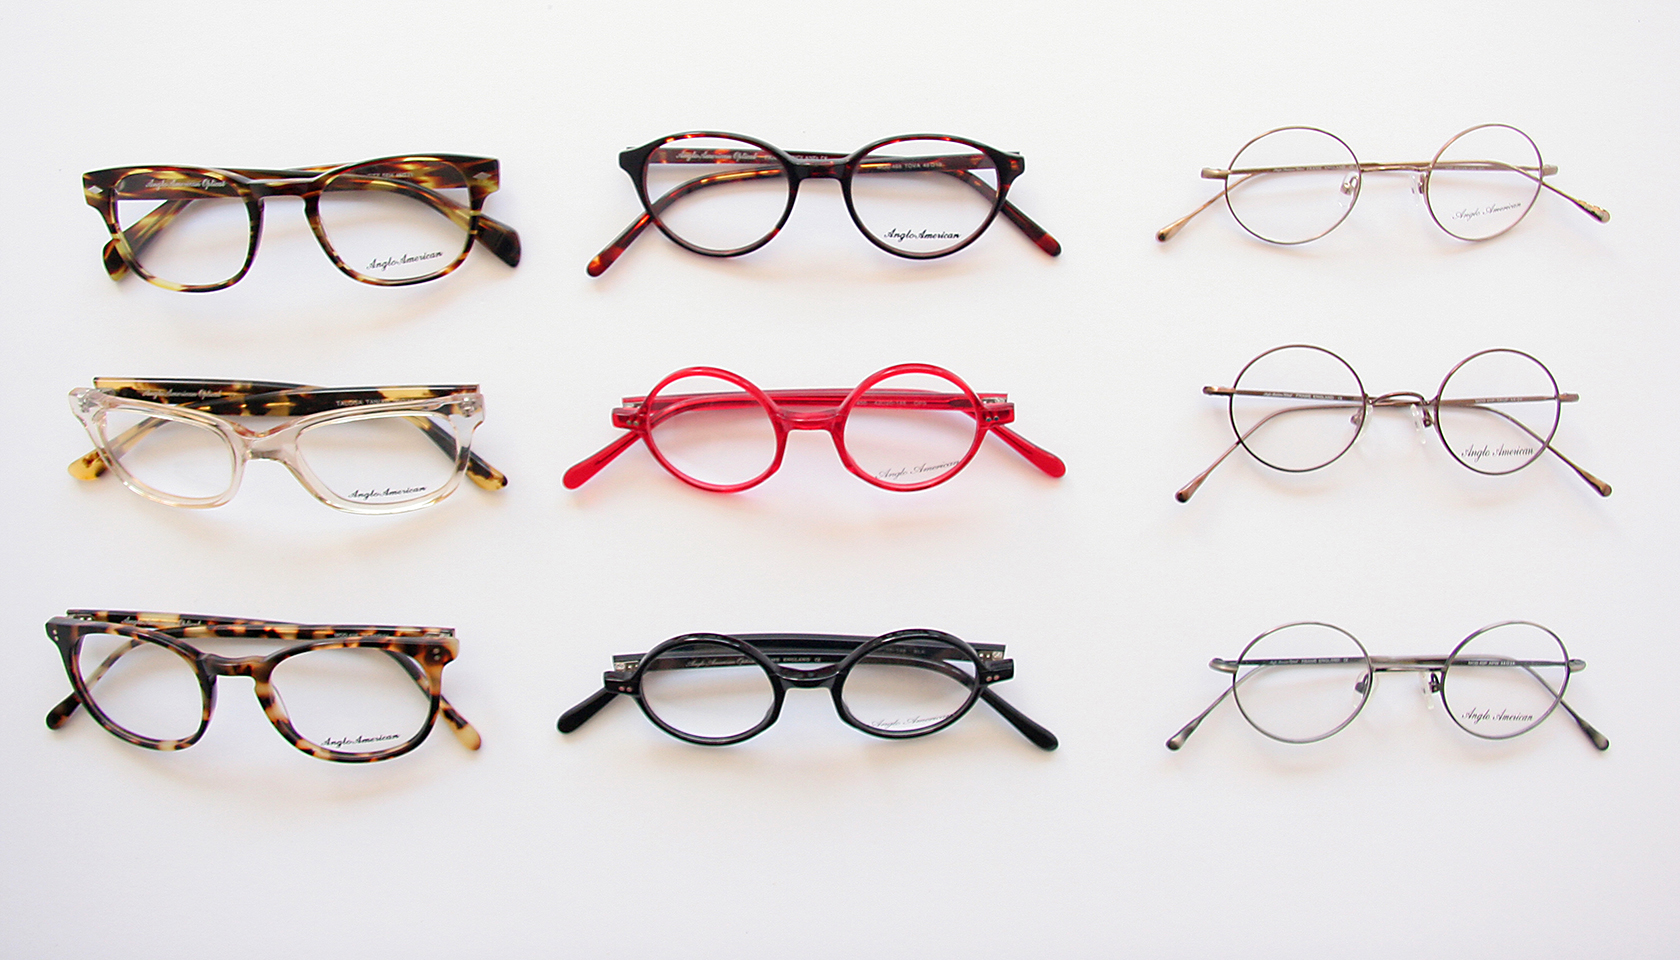 Anglo American Frames at Hillcrest Optical